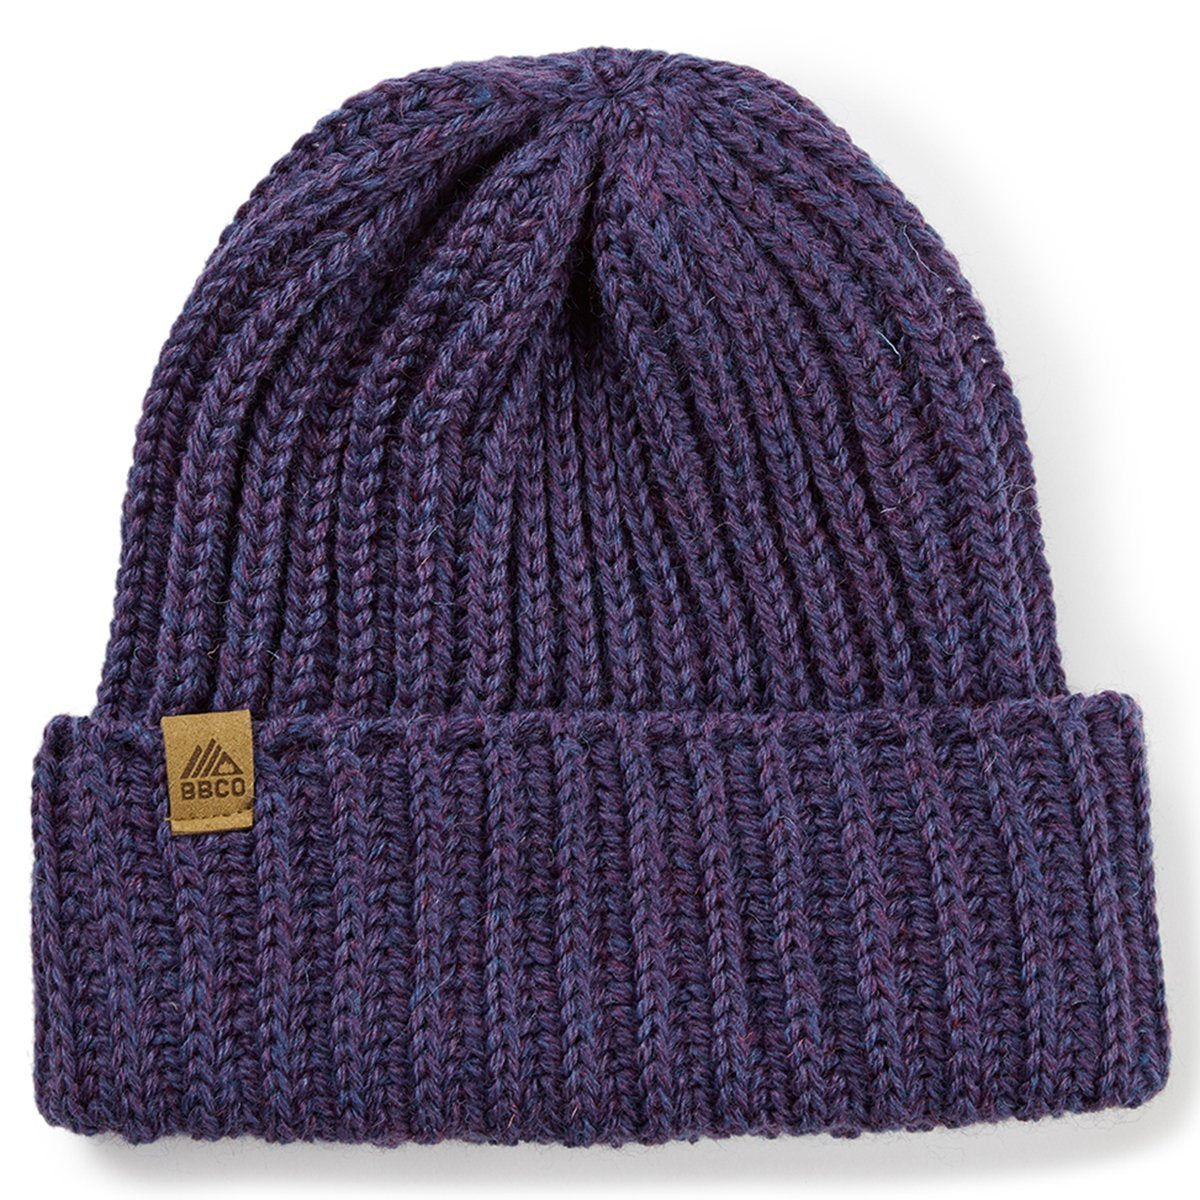 BBCOFIS001, BBCo, Fistral Beanie, Heather, Fisherman Beanie | Knitted Hat